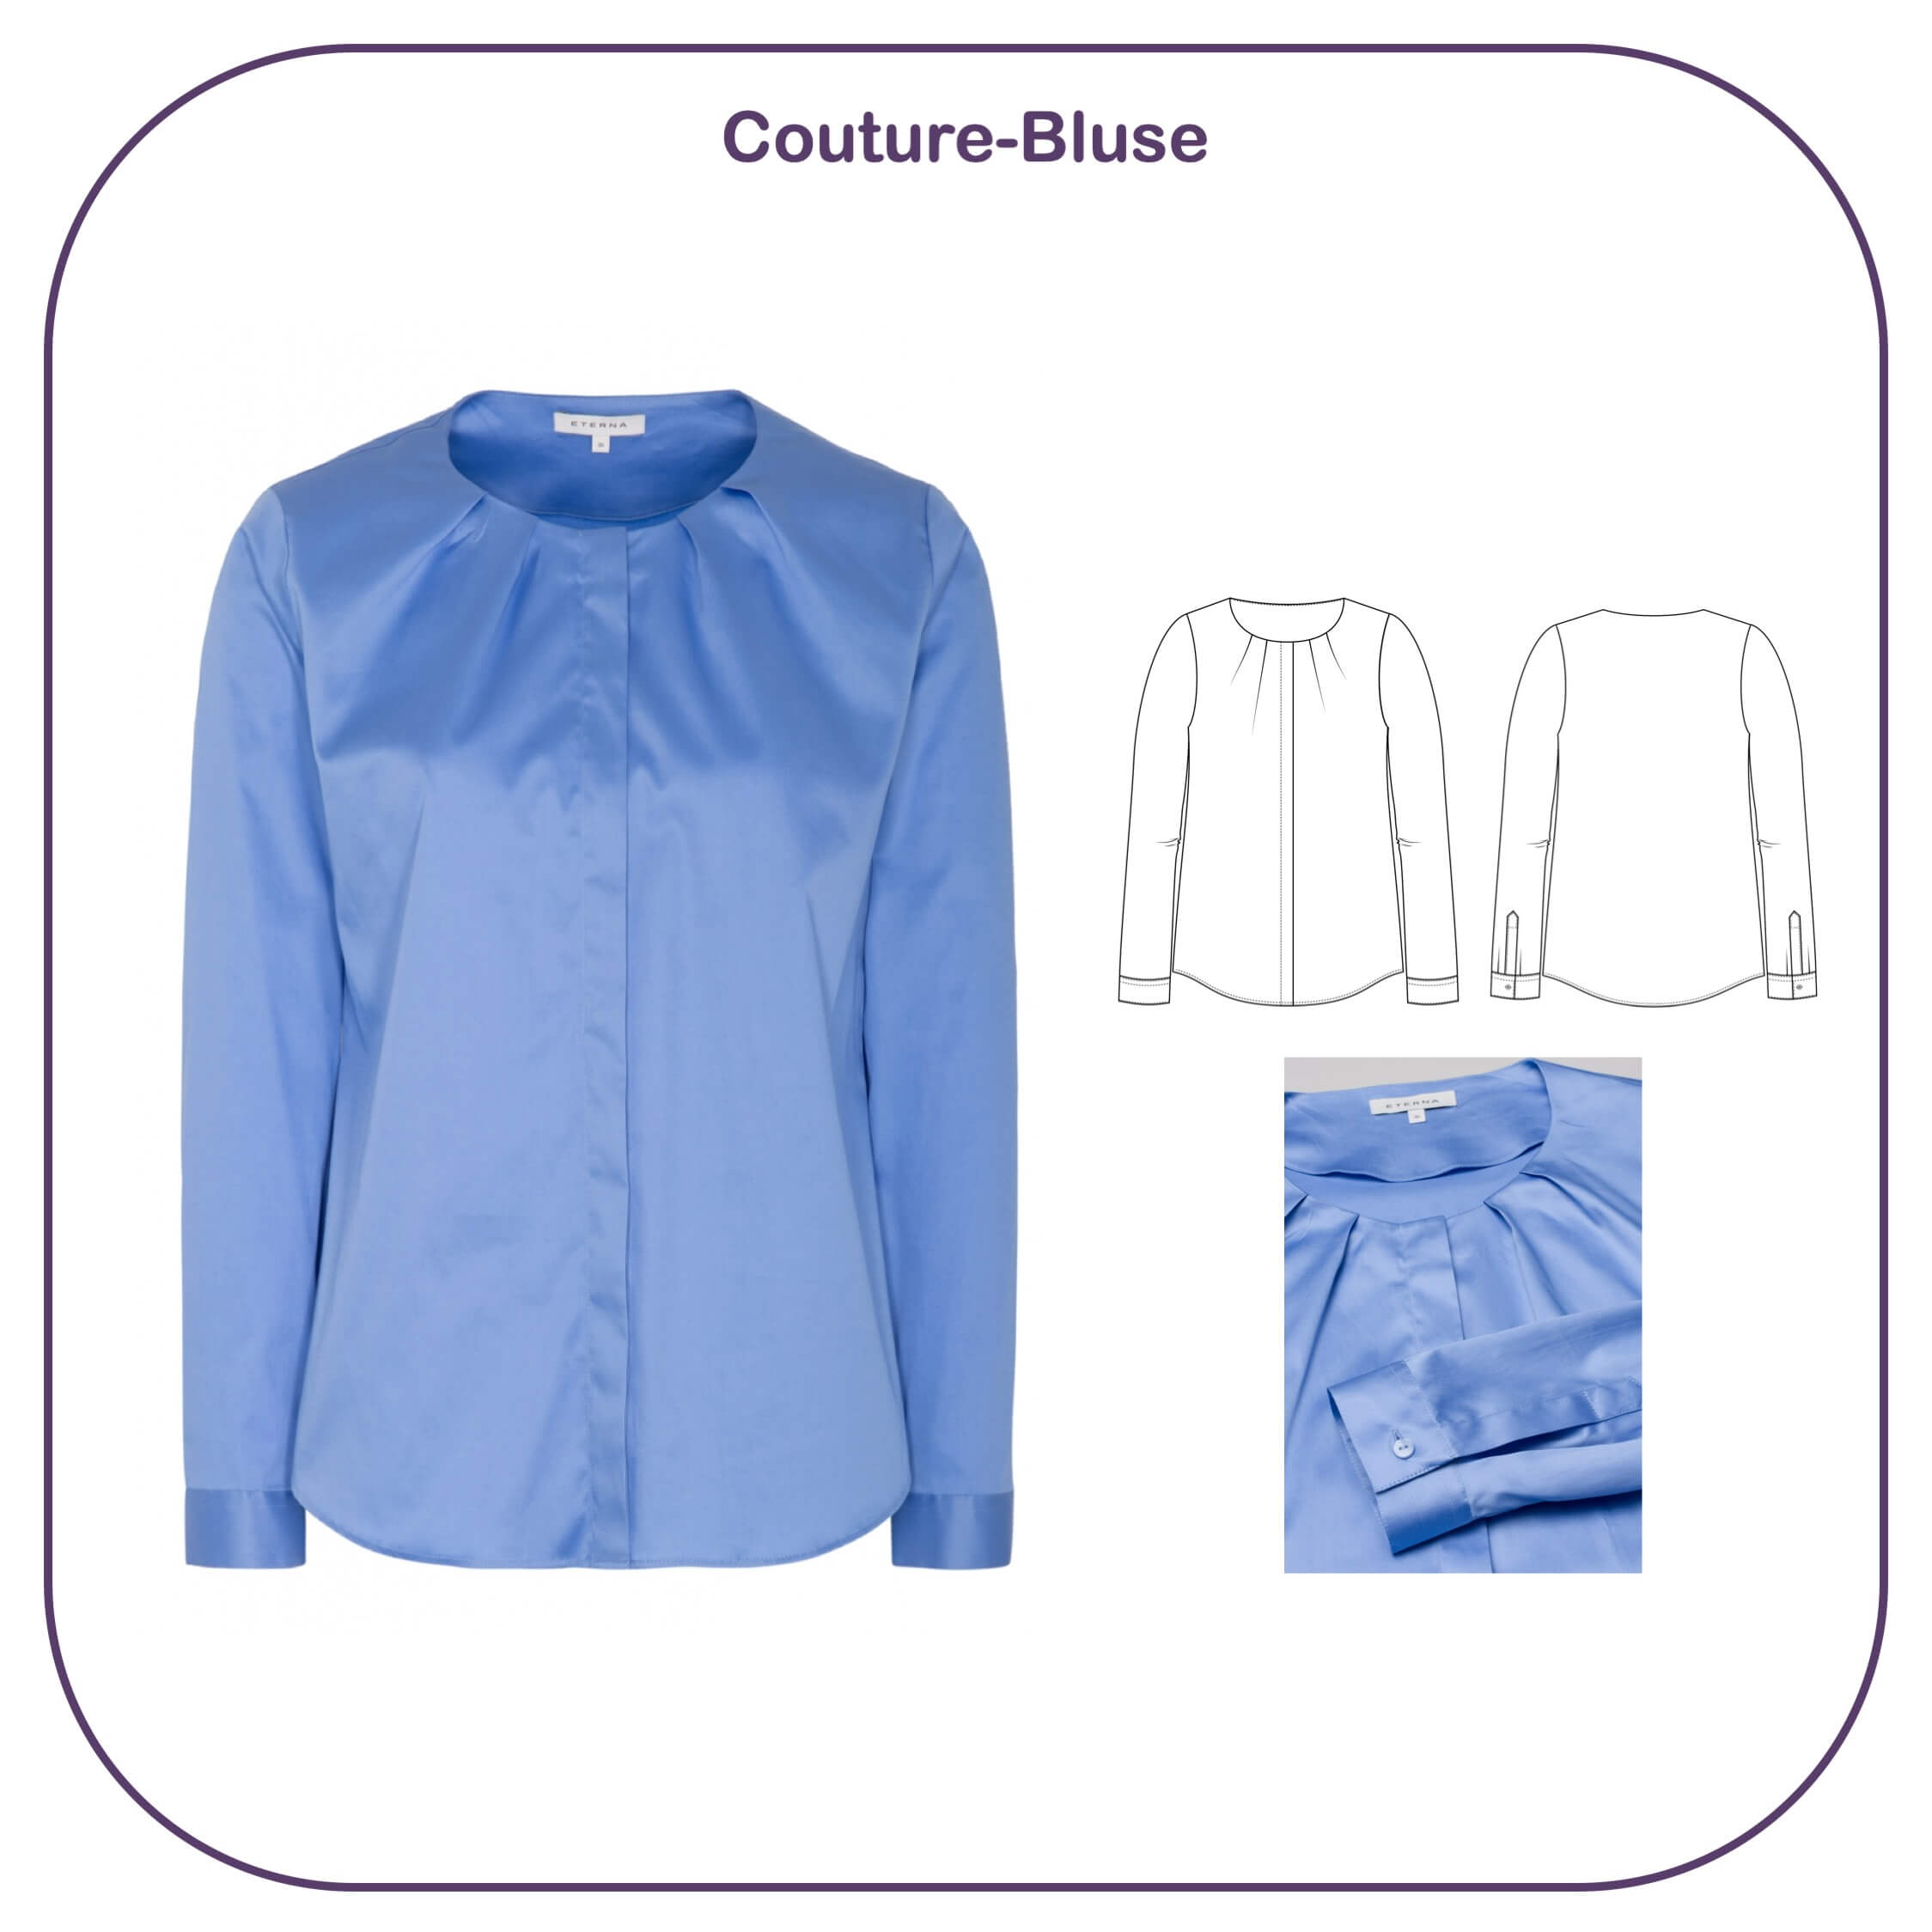 Couture-Bluse